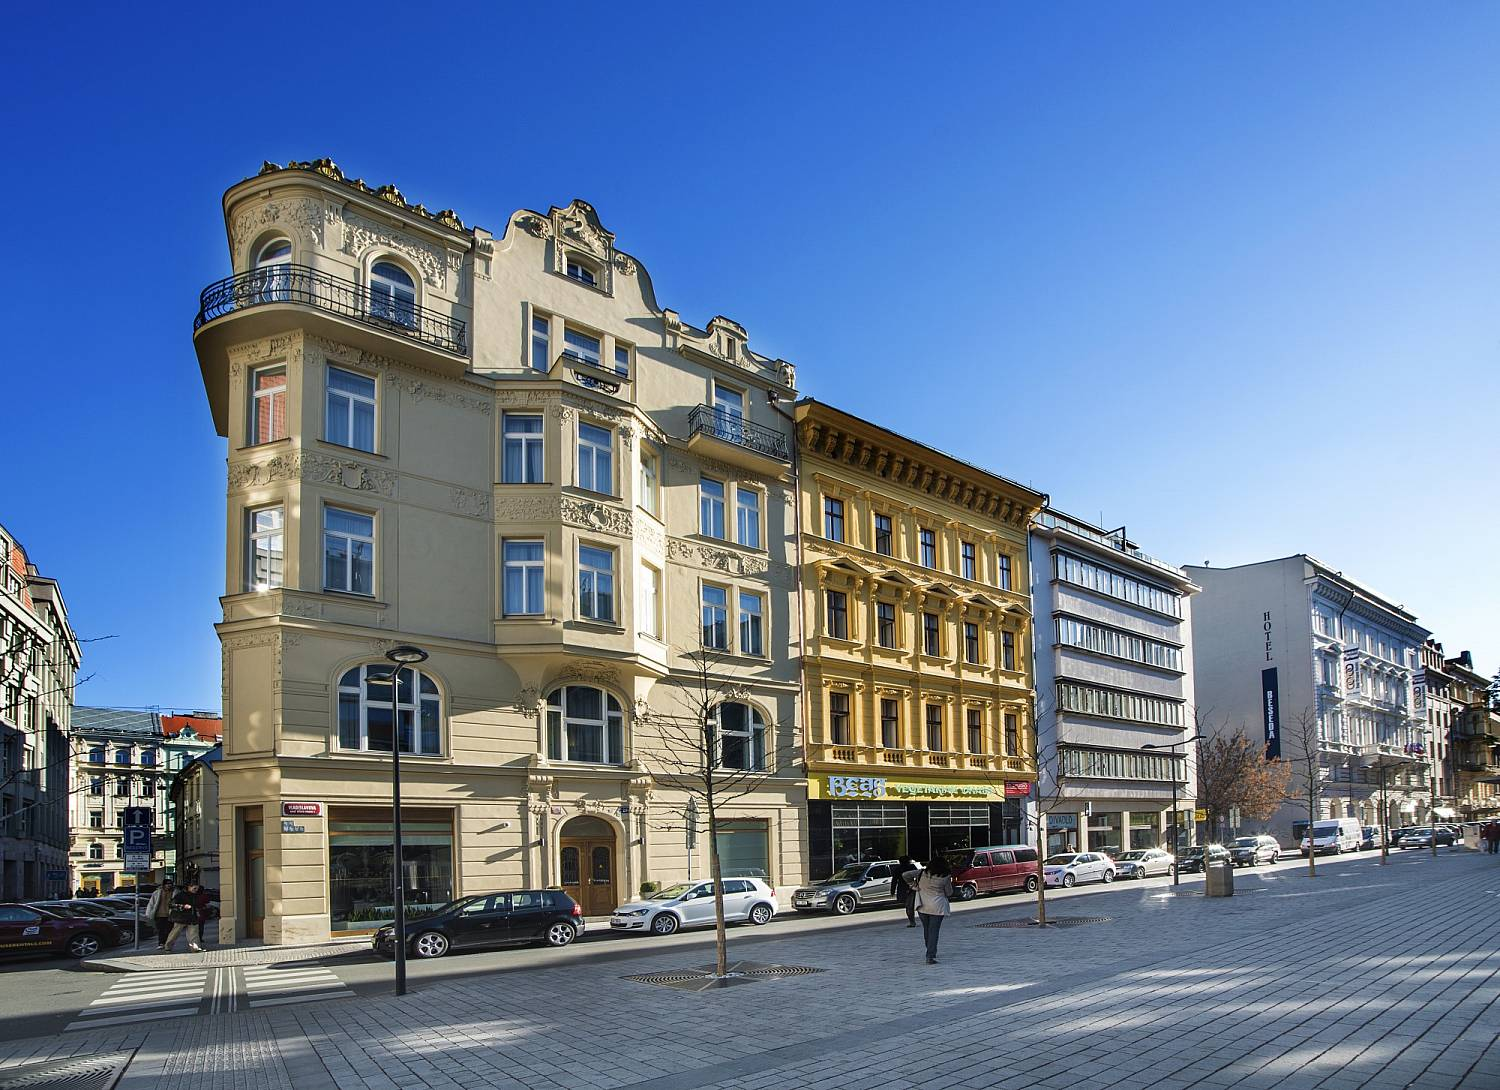 Galleria fotografica hotel golden crown prague for W hotel prague